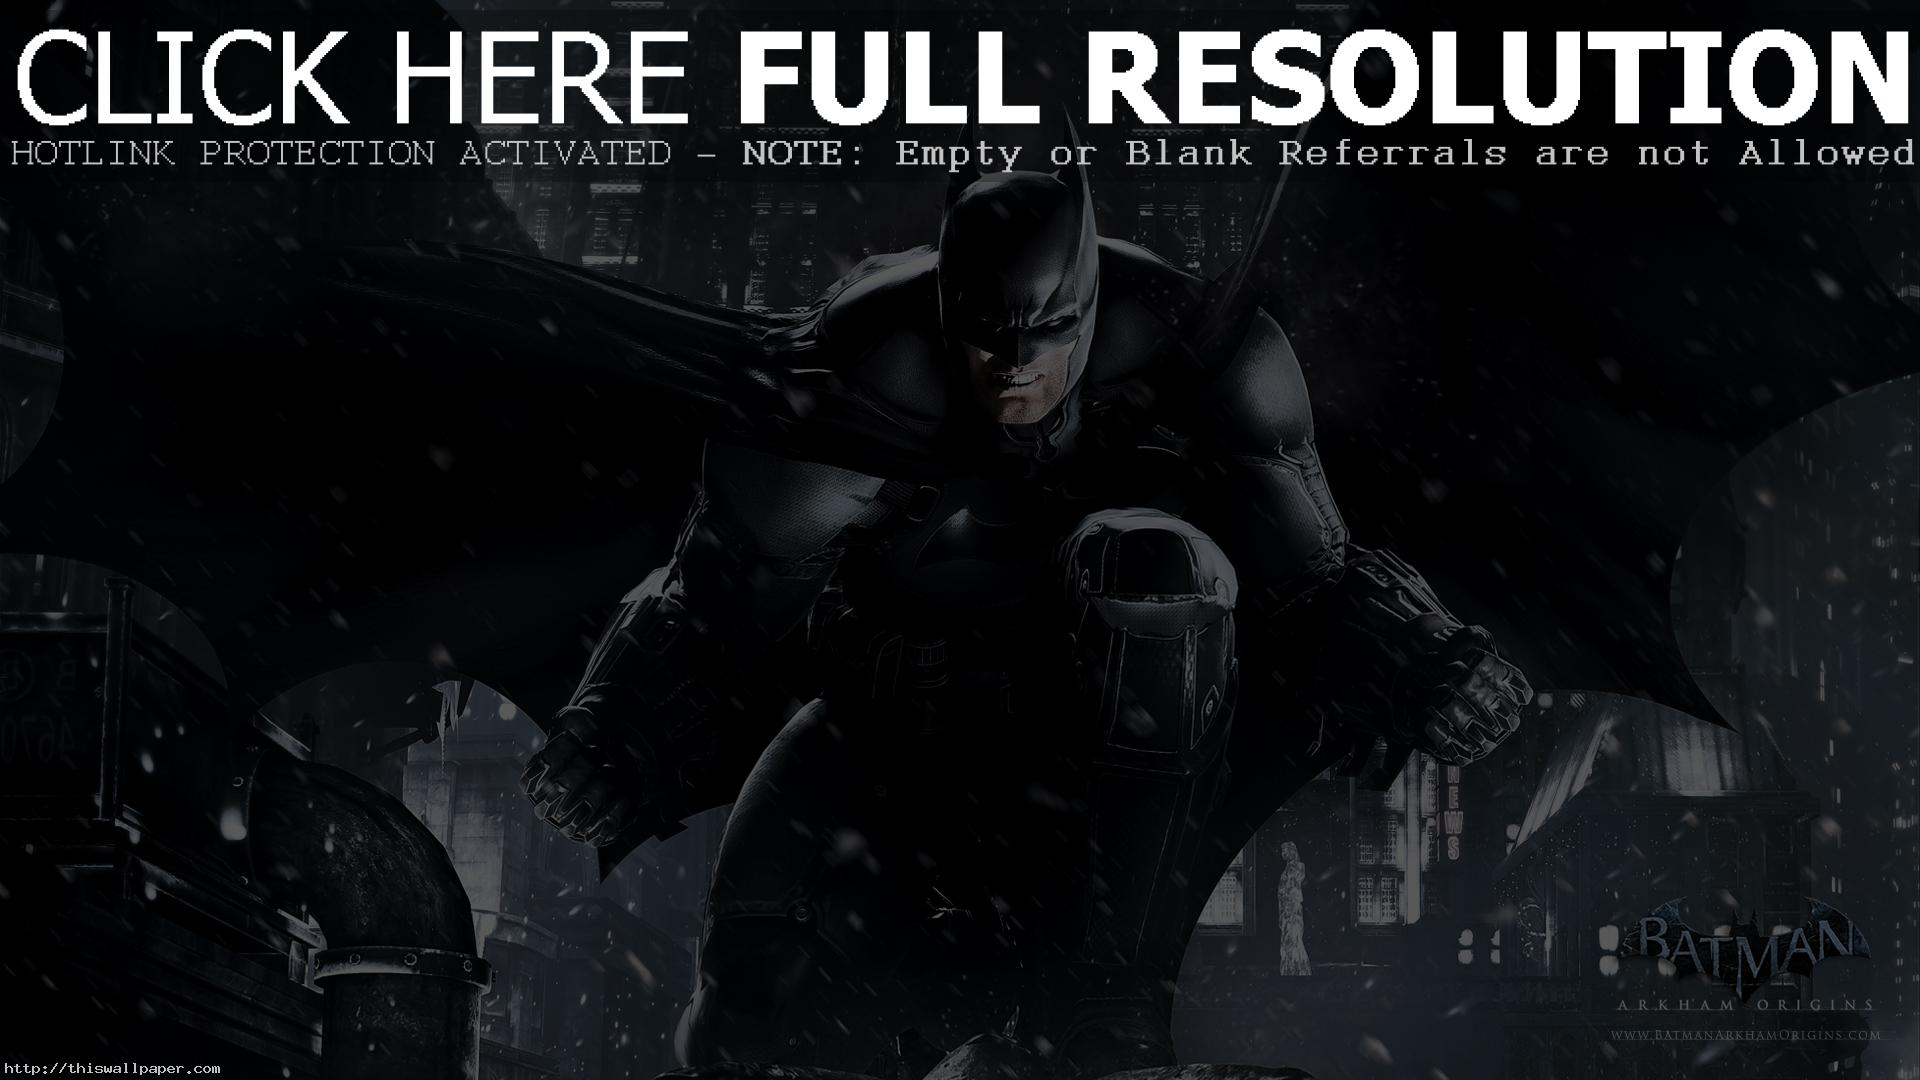 Collection of Batman Hd Wallpapers Free Download on HDWallpapers 1920x1080